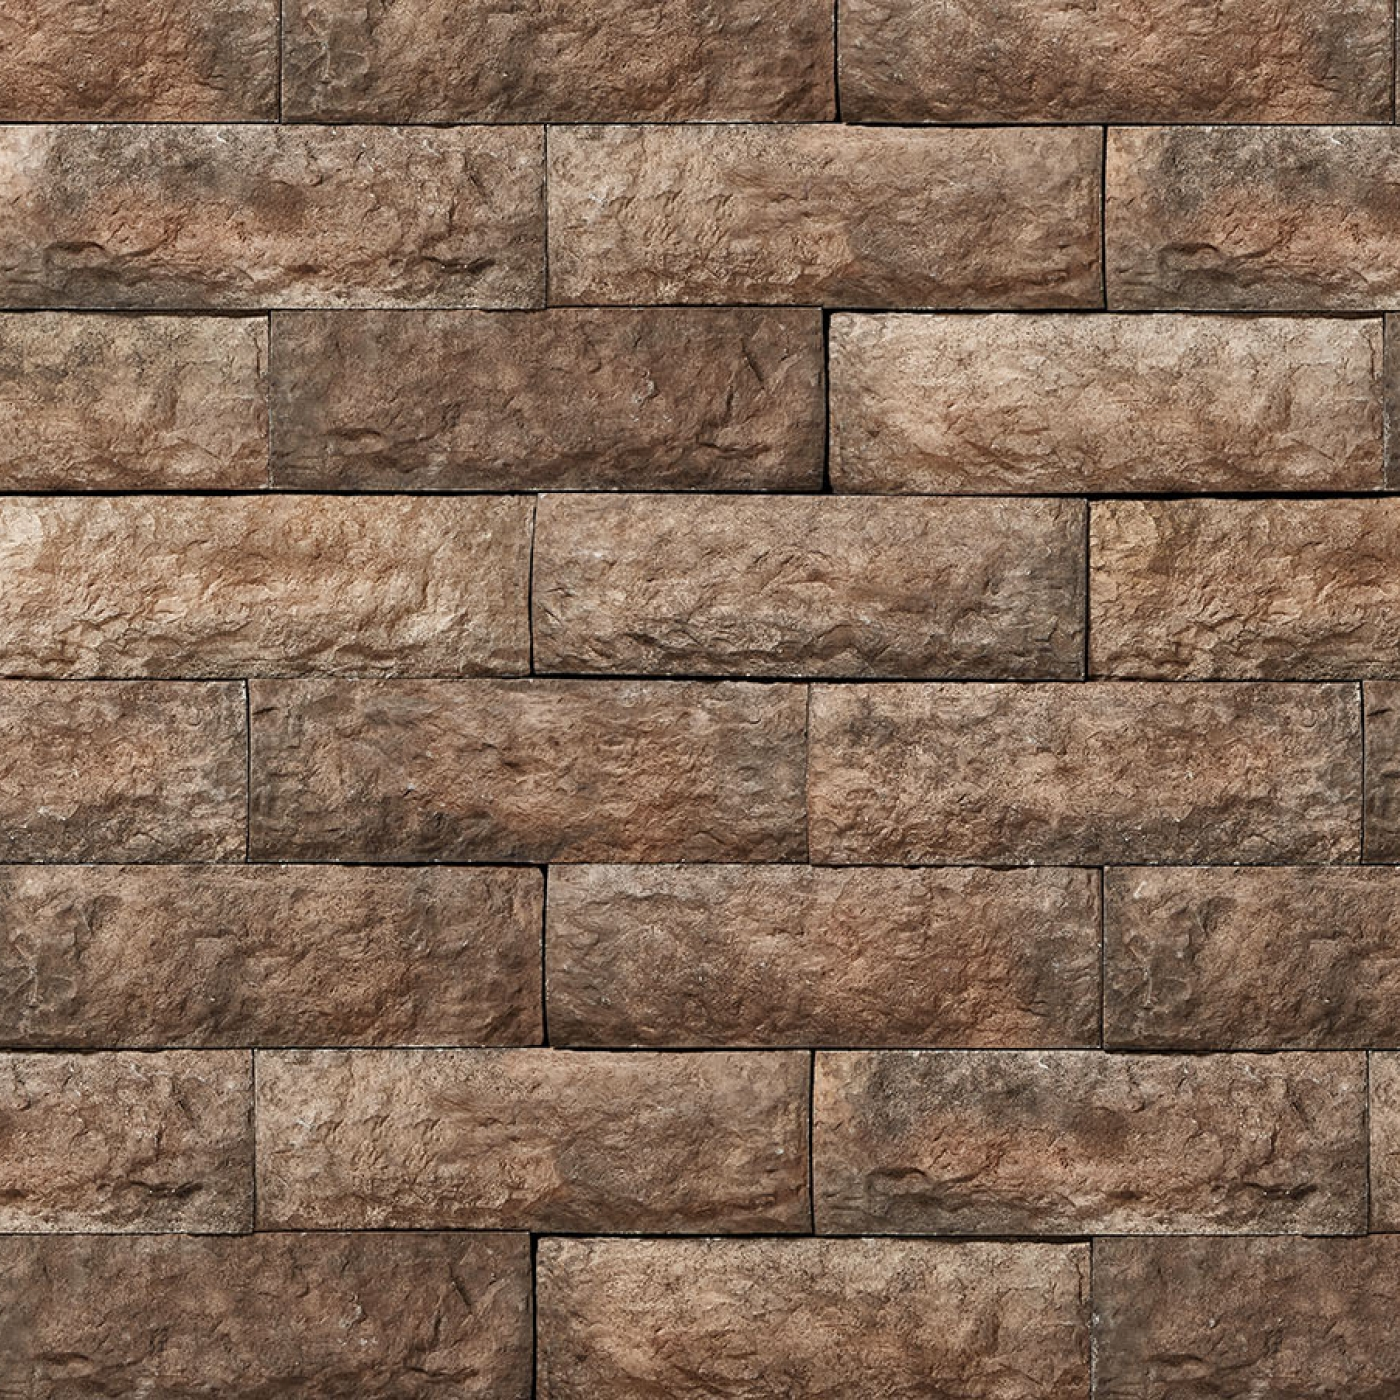 Desert Sunset Luxor Stone Veneer from Environmental StoneWorks